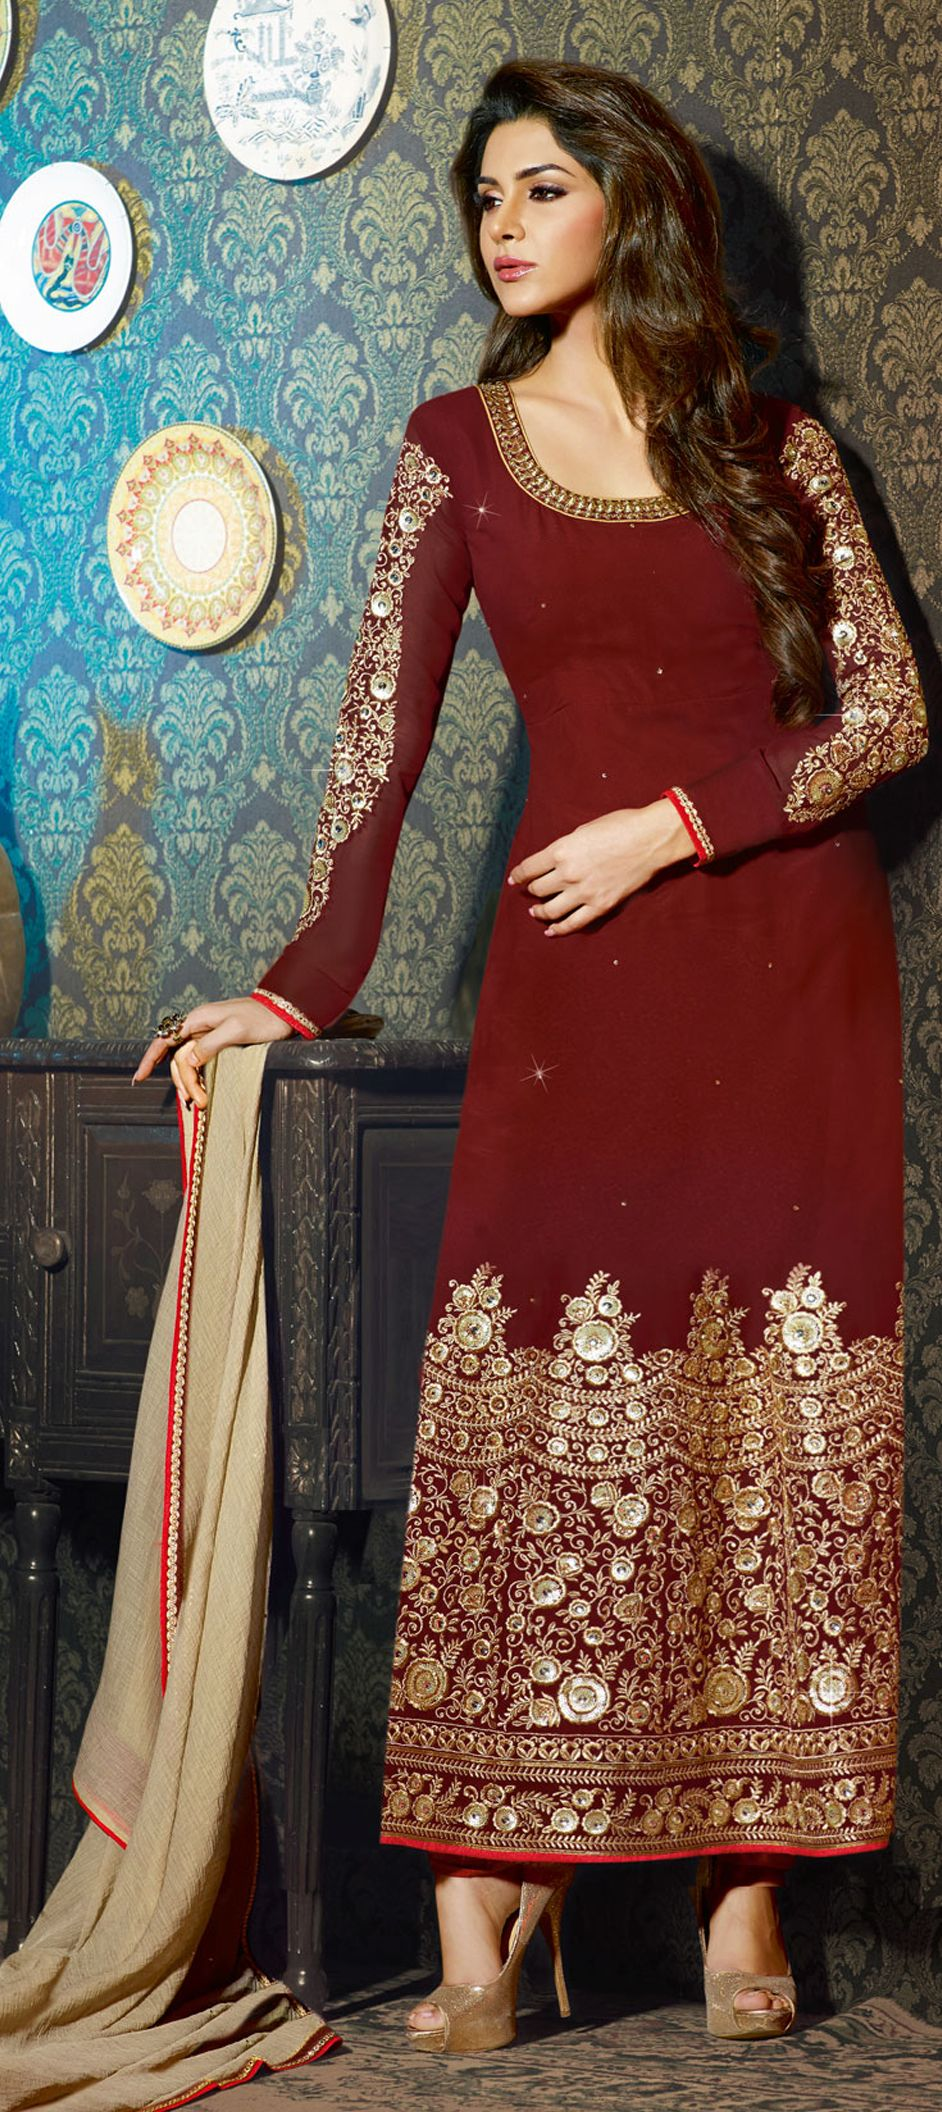 425781: Red and Maroon color family semi-stiched Party Wear Salwar ...